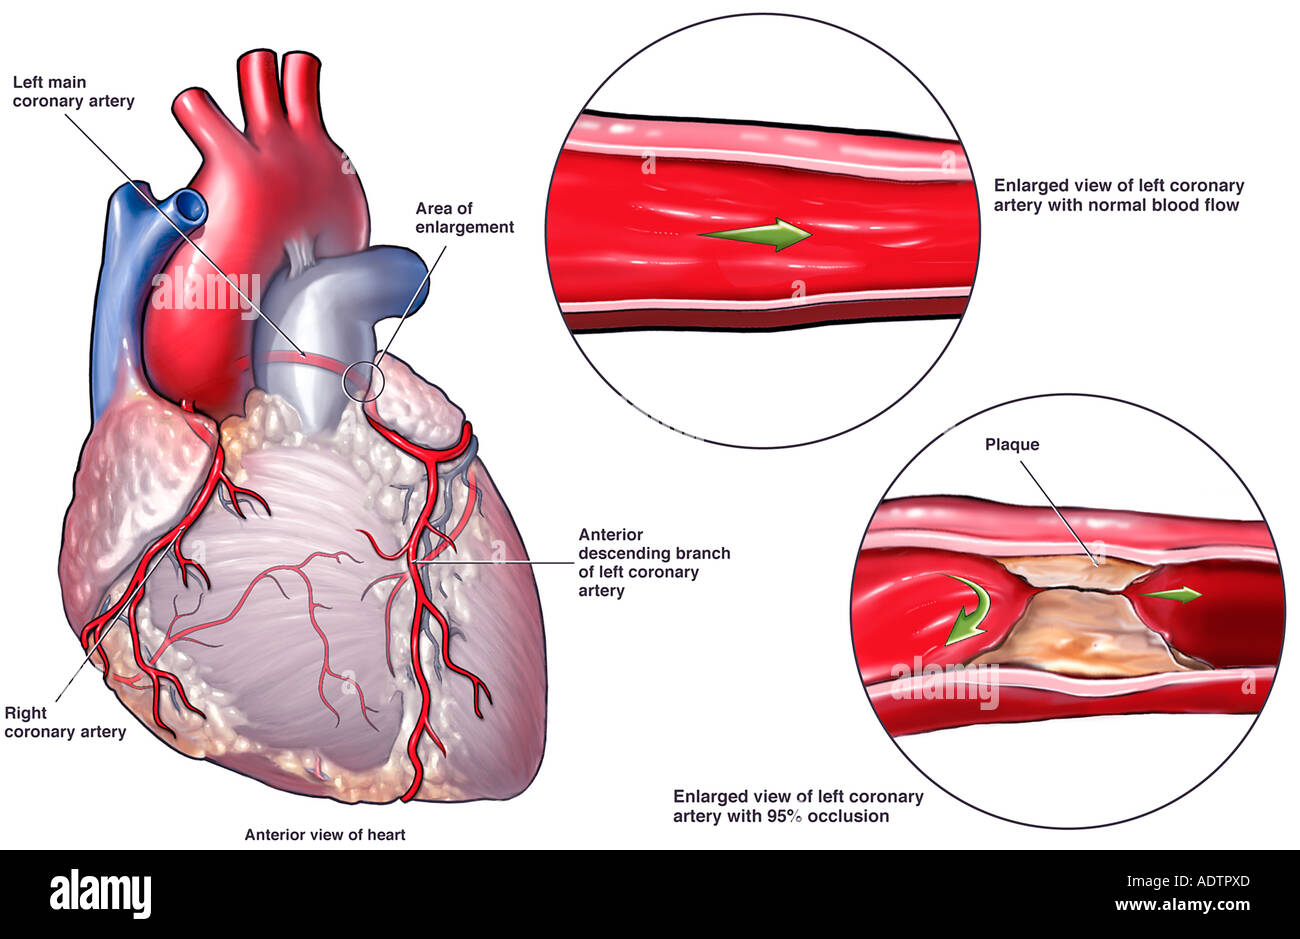 cad coronary artery disease coronary heart Chd vs cad vs atherosclerosis many people use the names coronary artery disease and coronary heart disease interchangeably coronary artery disease is considered the most common type of heart disease.